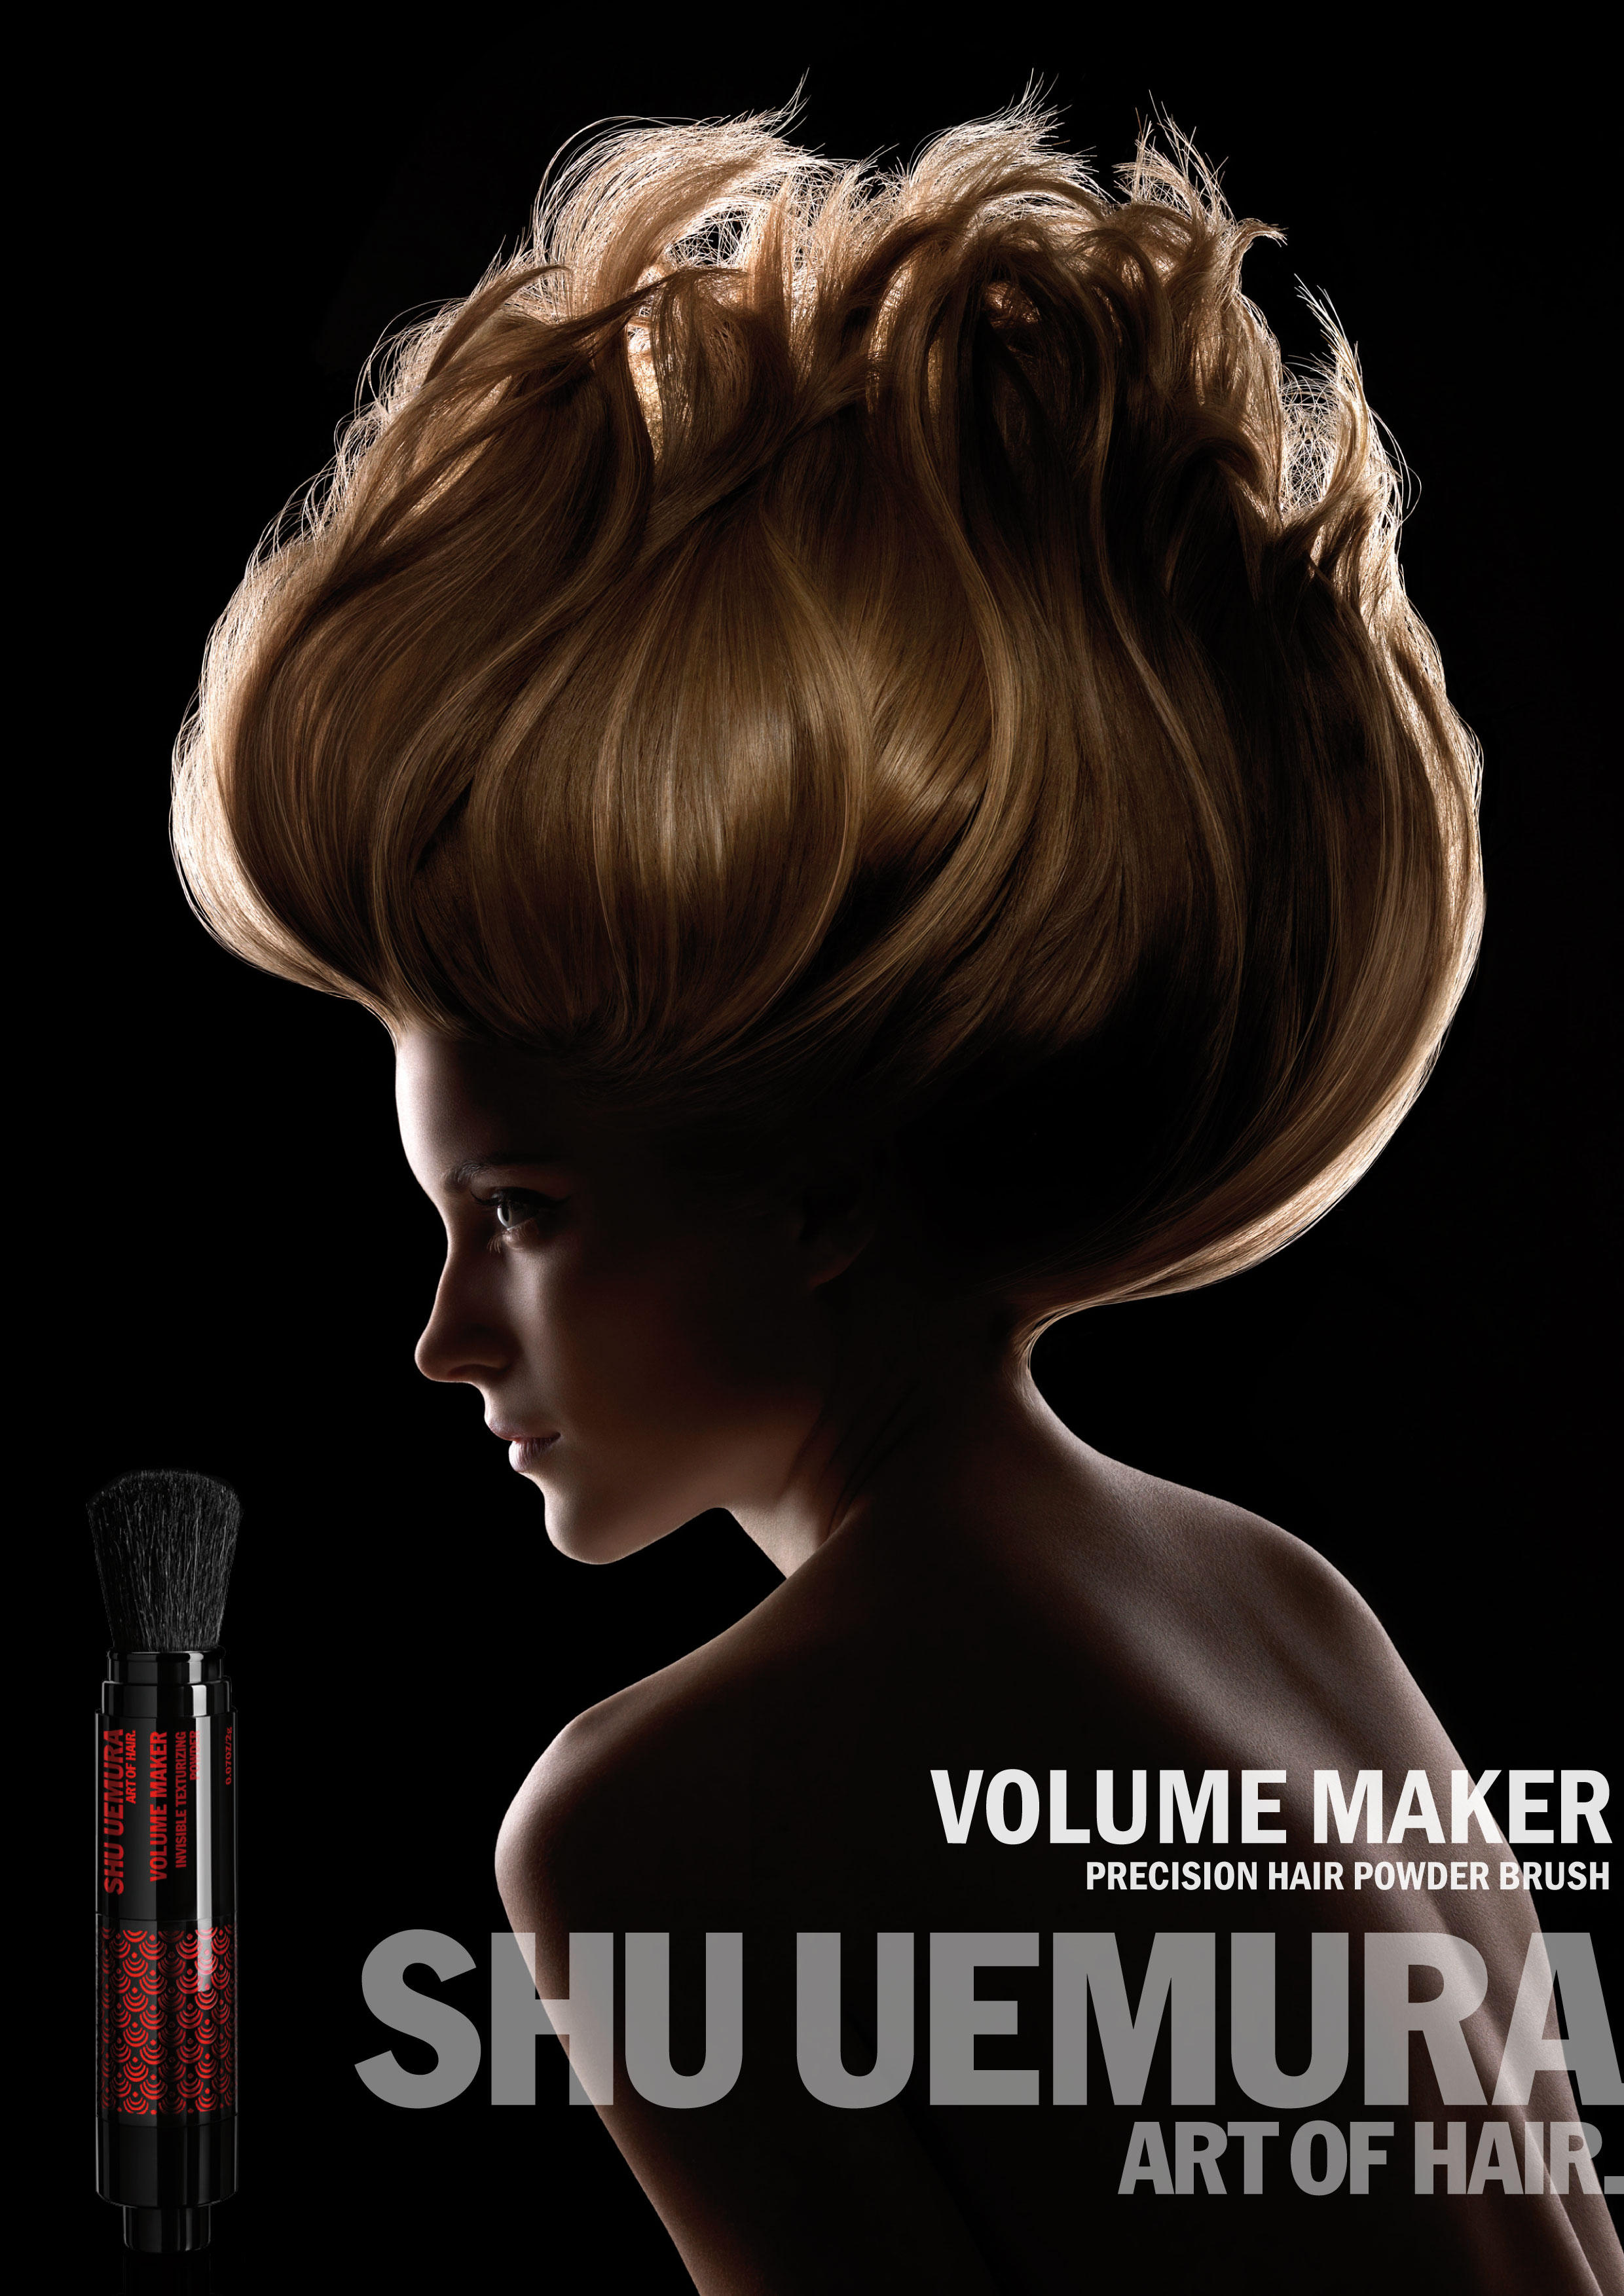 Free Cleansing Oil Shampoo & Geisha Styling Comb + Free Shipping on Orders of $60 at Shu Uemura